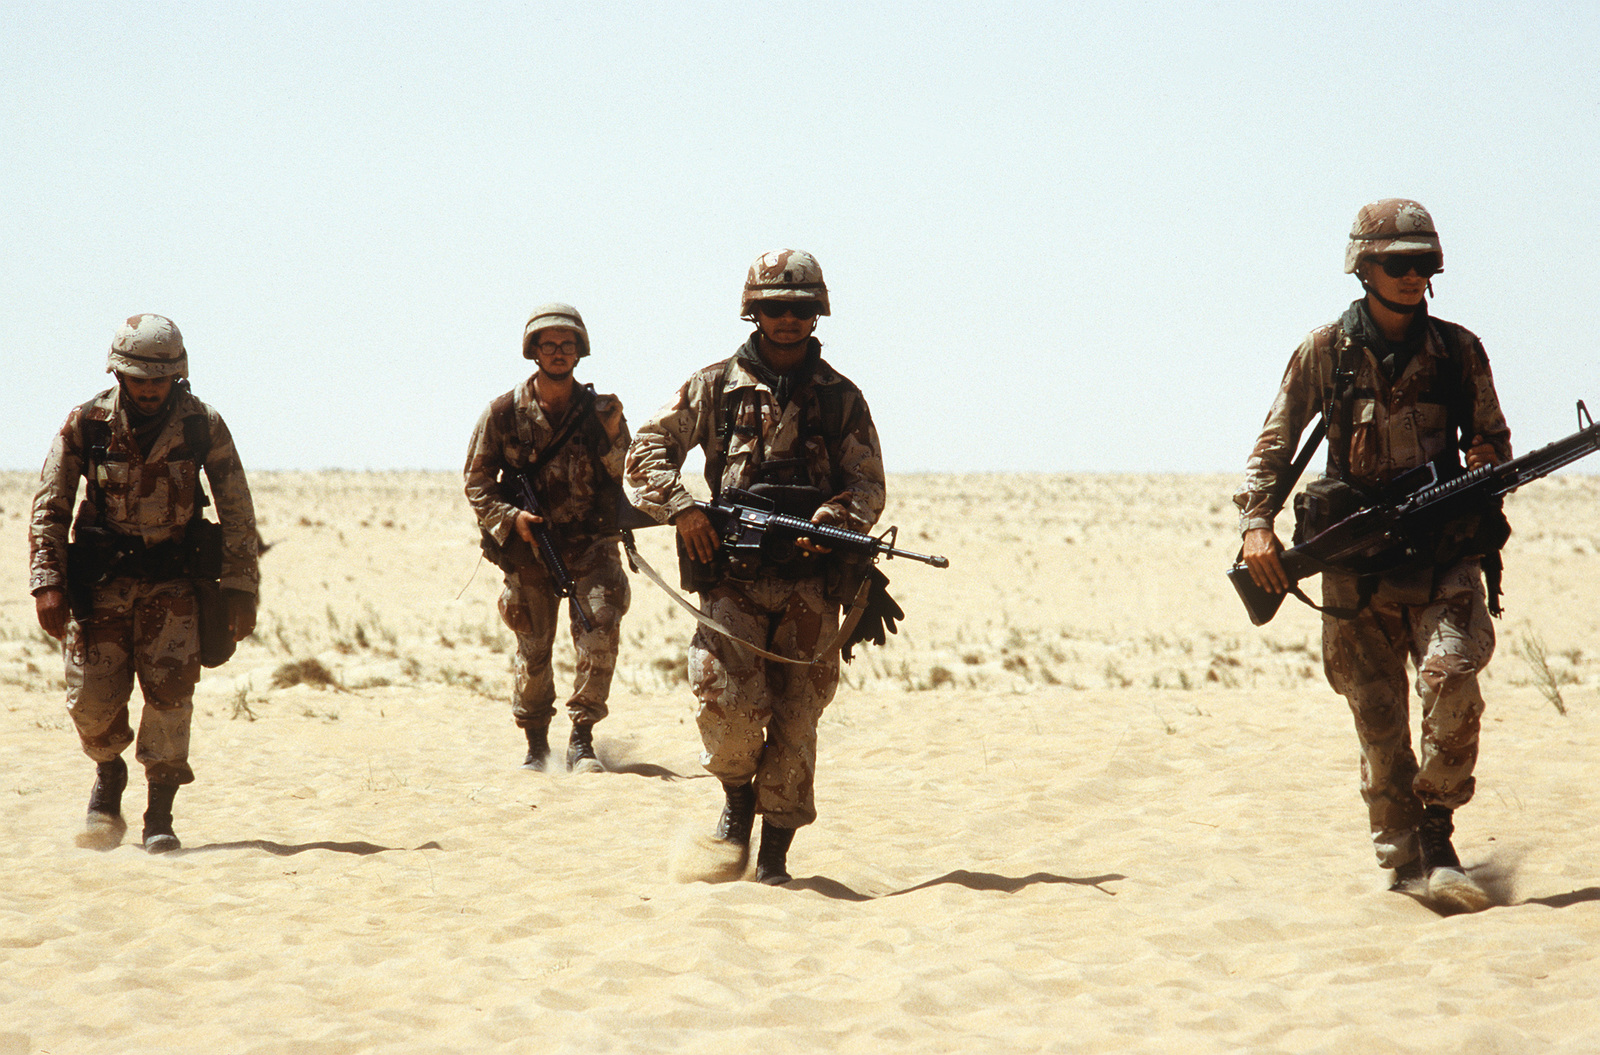 Soldiers from 1ST Bn., 505th Parachute Infantry Regt., 82nd Airborne Div., walk through a training range as they conduct reaction drills during Operation Desert Shield